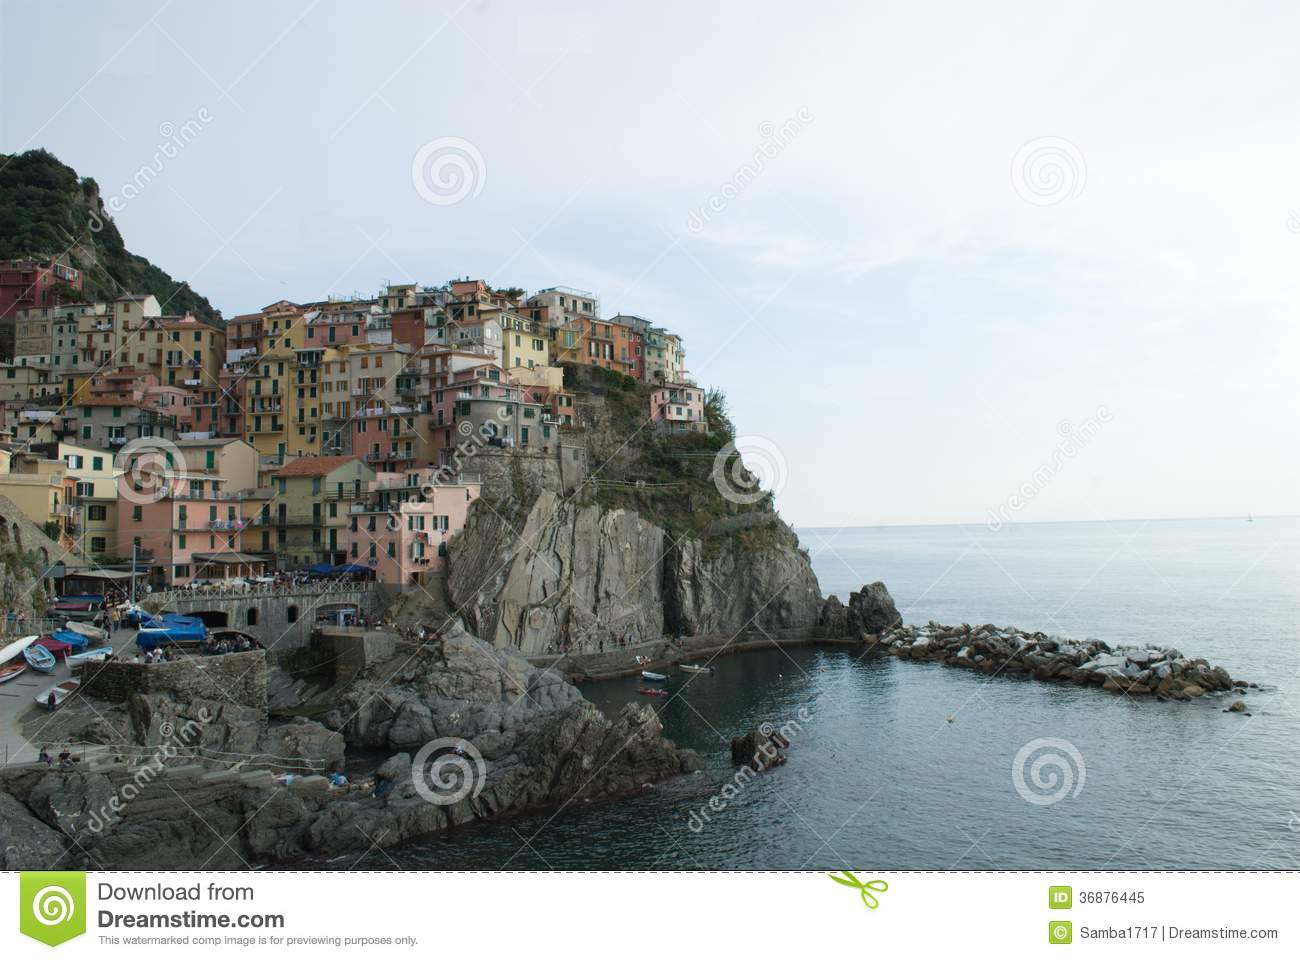 Download Vista di Manarola immagine stock. Immagine di mare, vista - 36876445